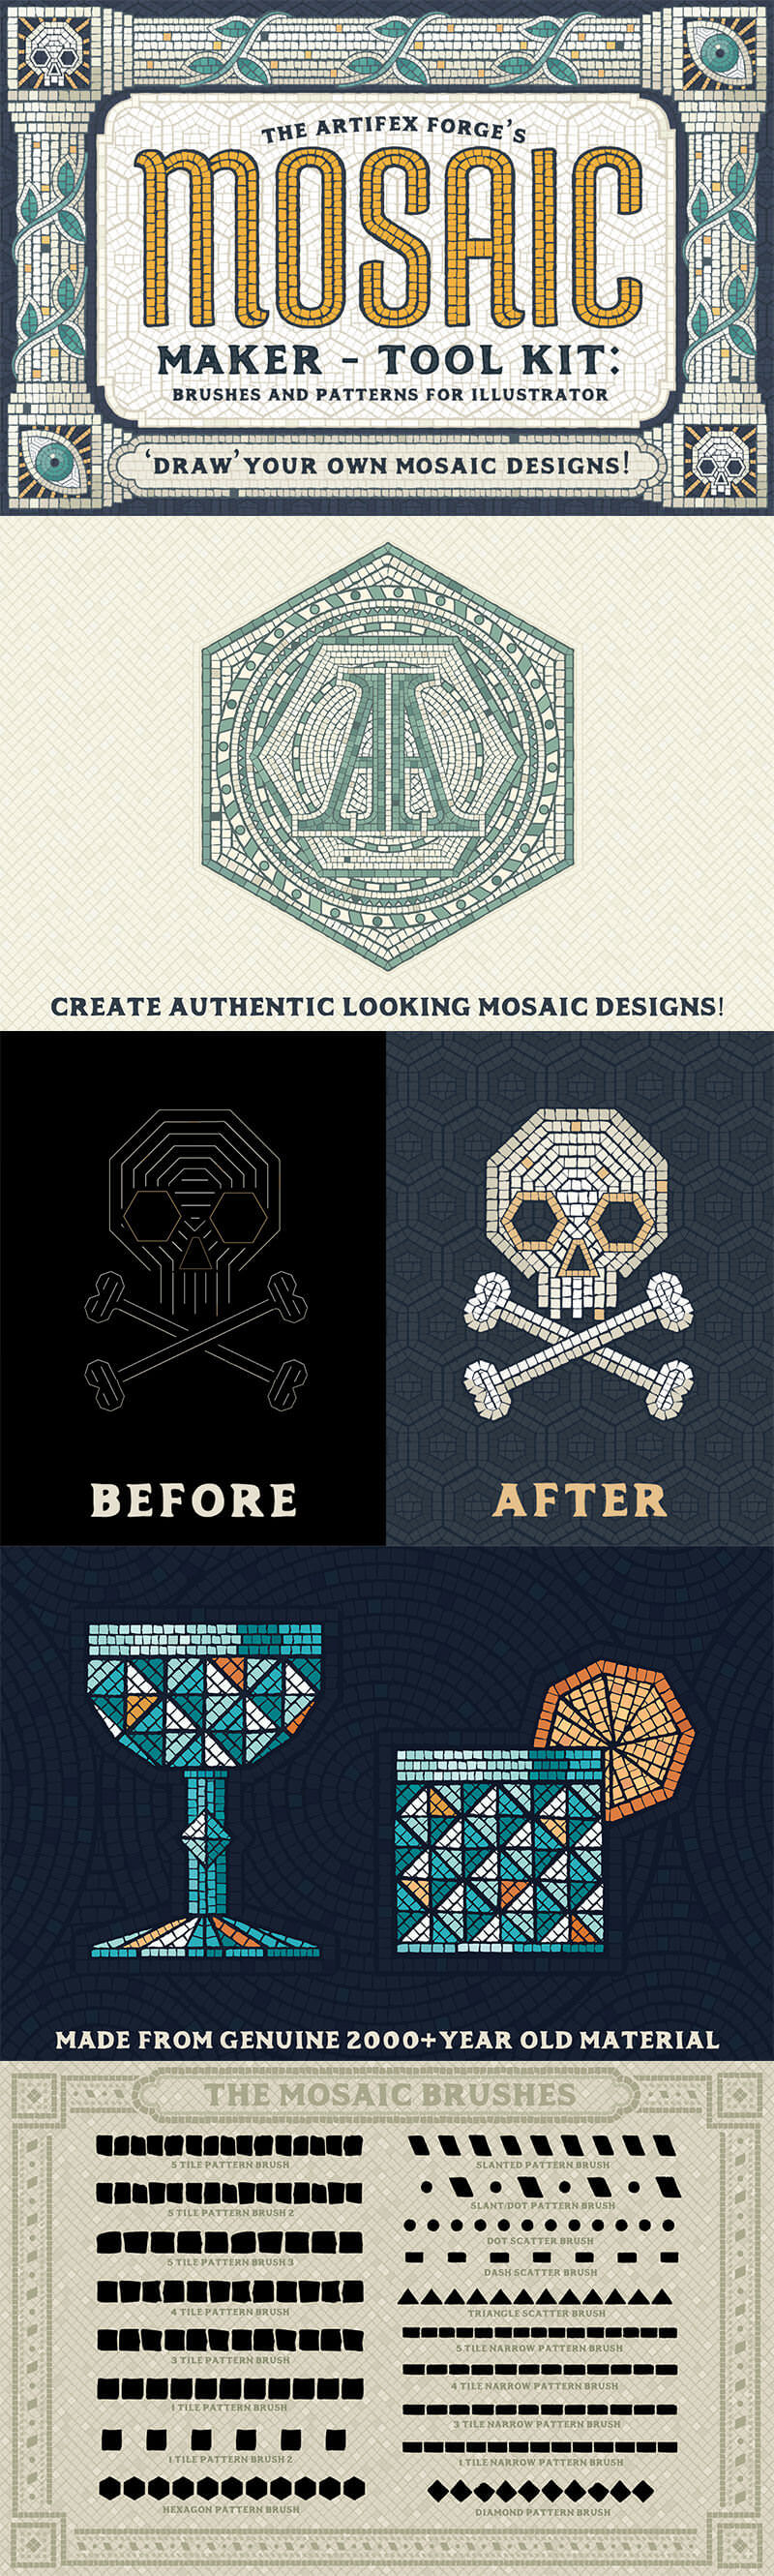 Mosaic-Maker-Brushes-And-Patterns-cover